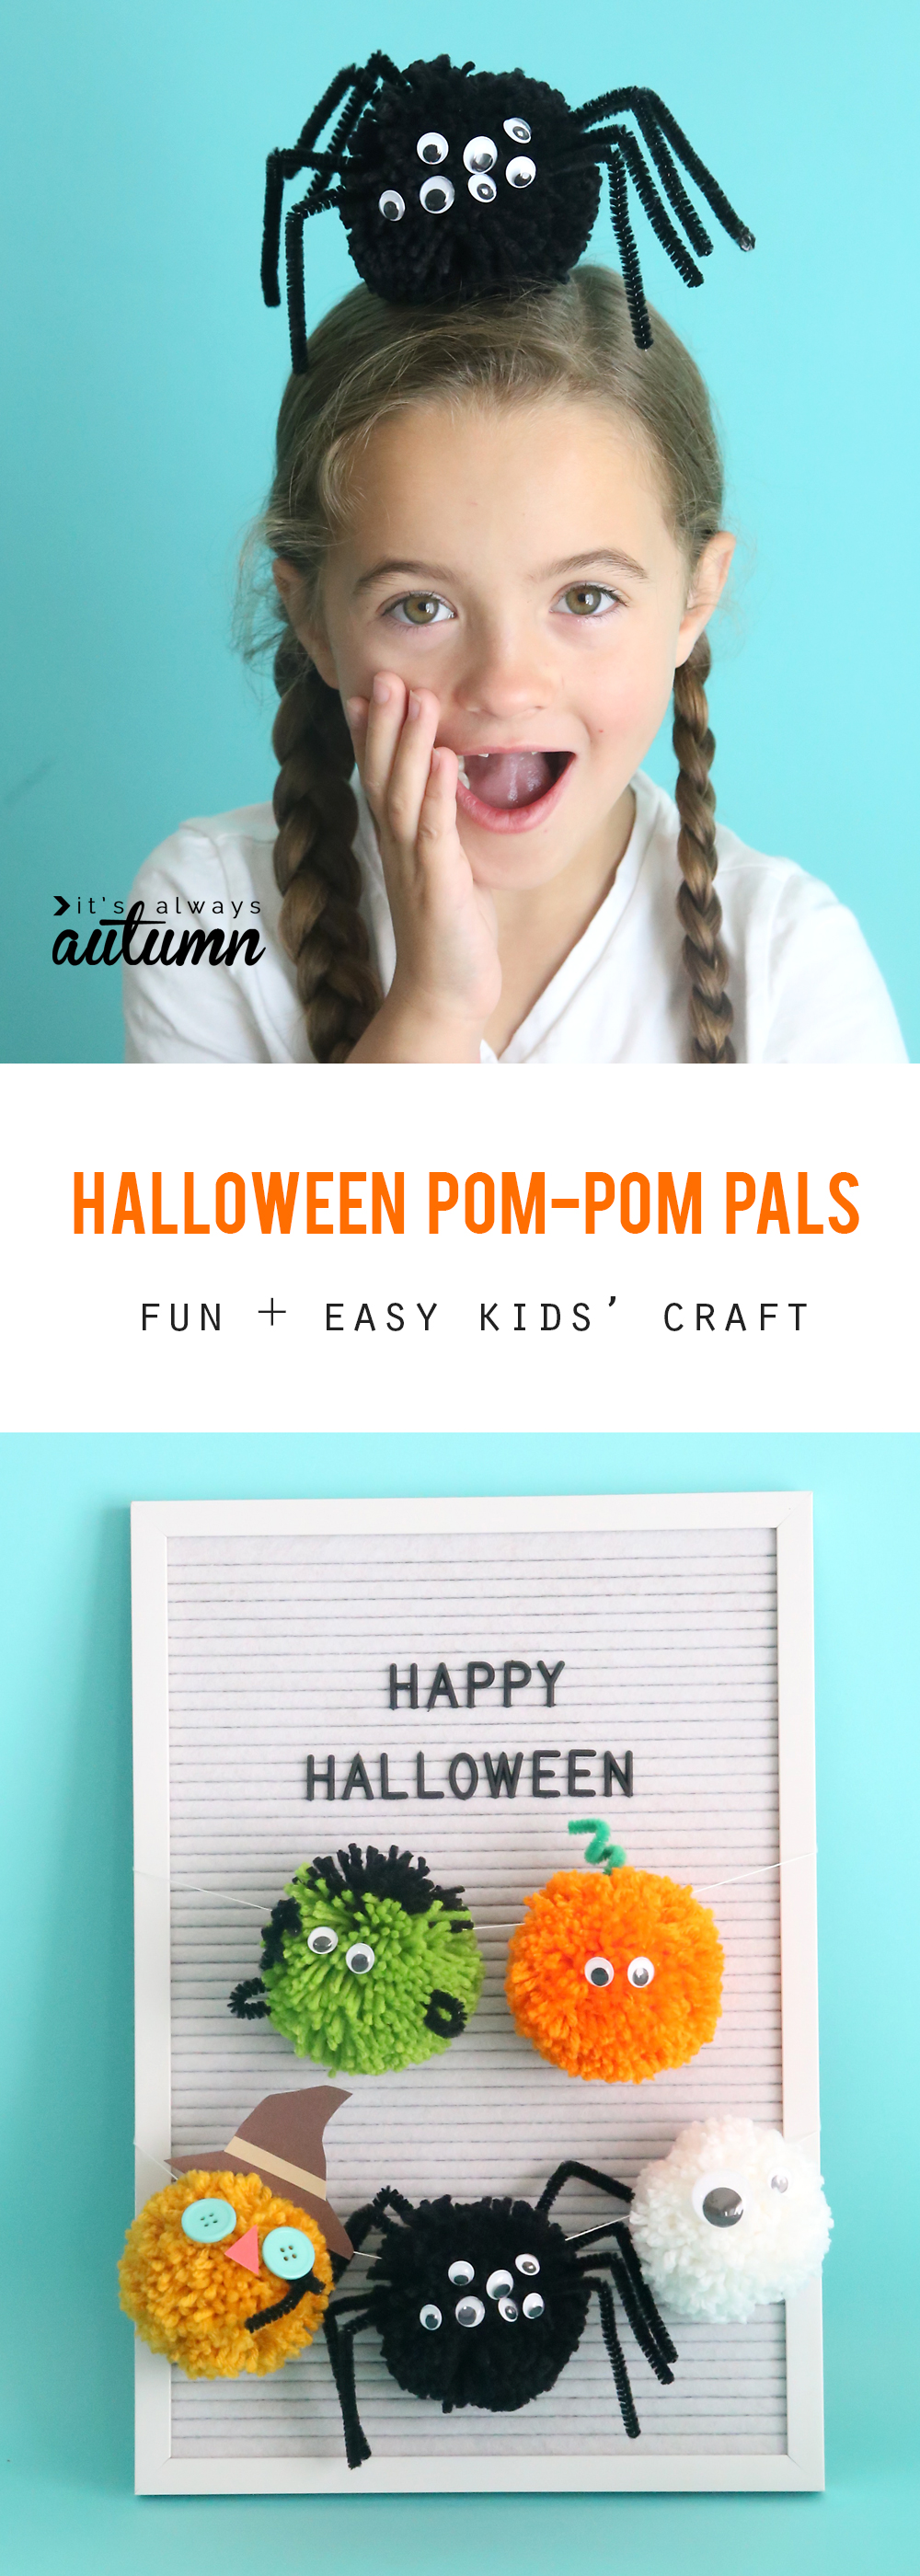 Girl with a pom pom spider on her head; Halloween pom poms hanging on a garland